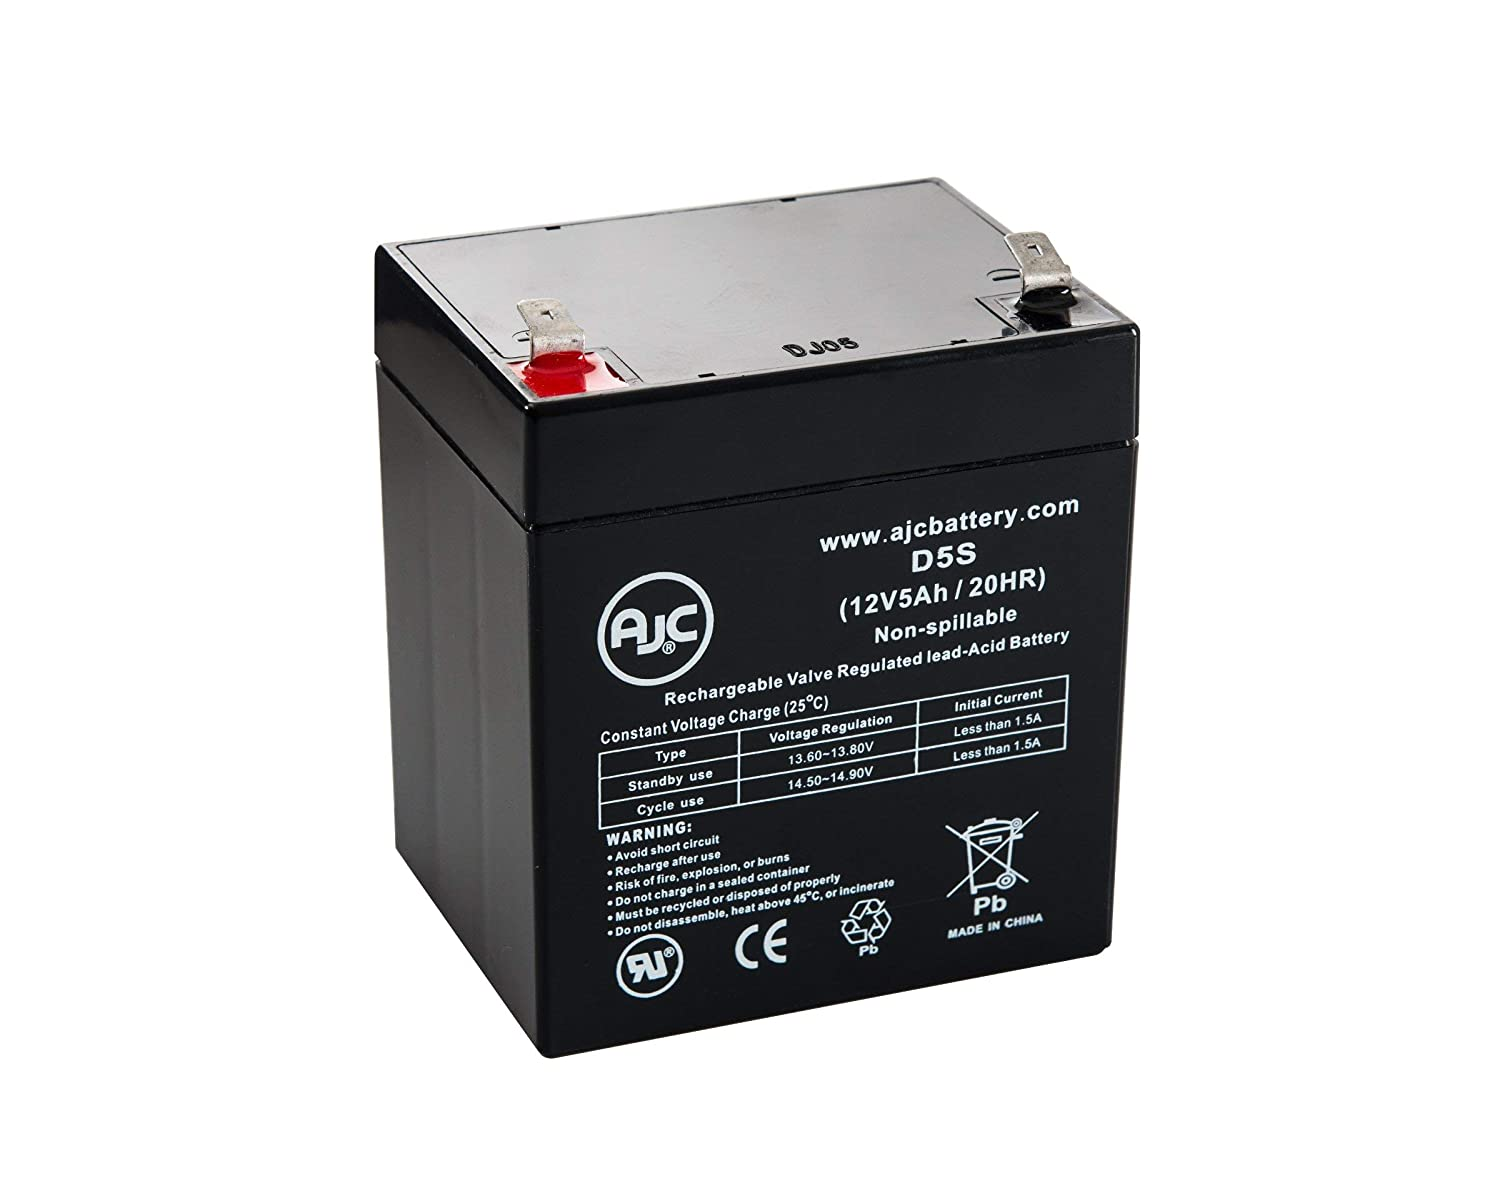 Razor E100 Sweat Pea 13111263 12V 5Ah Scooter Battery - This is an AJC Brand Replacement AJC Battery